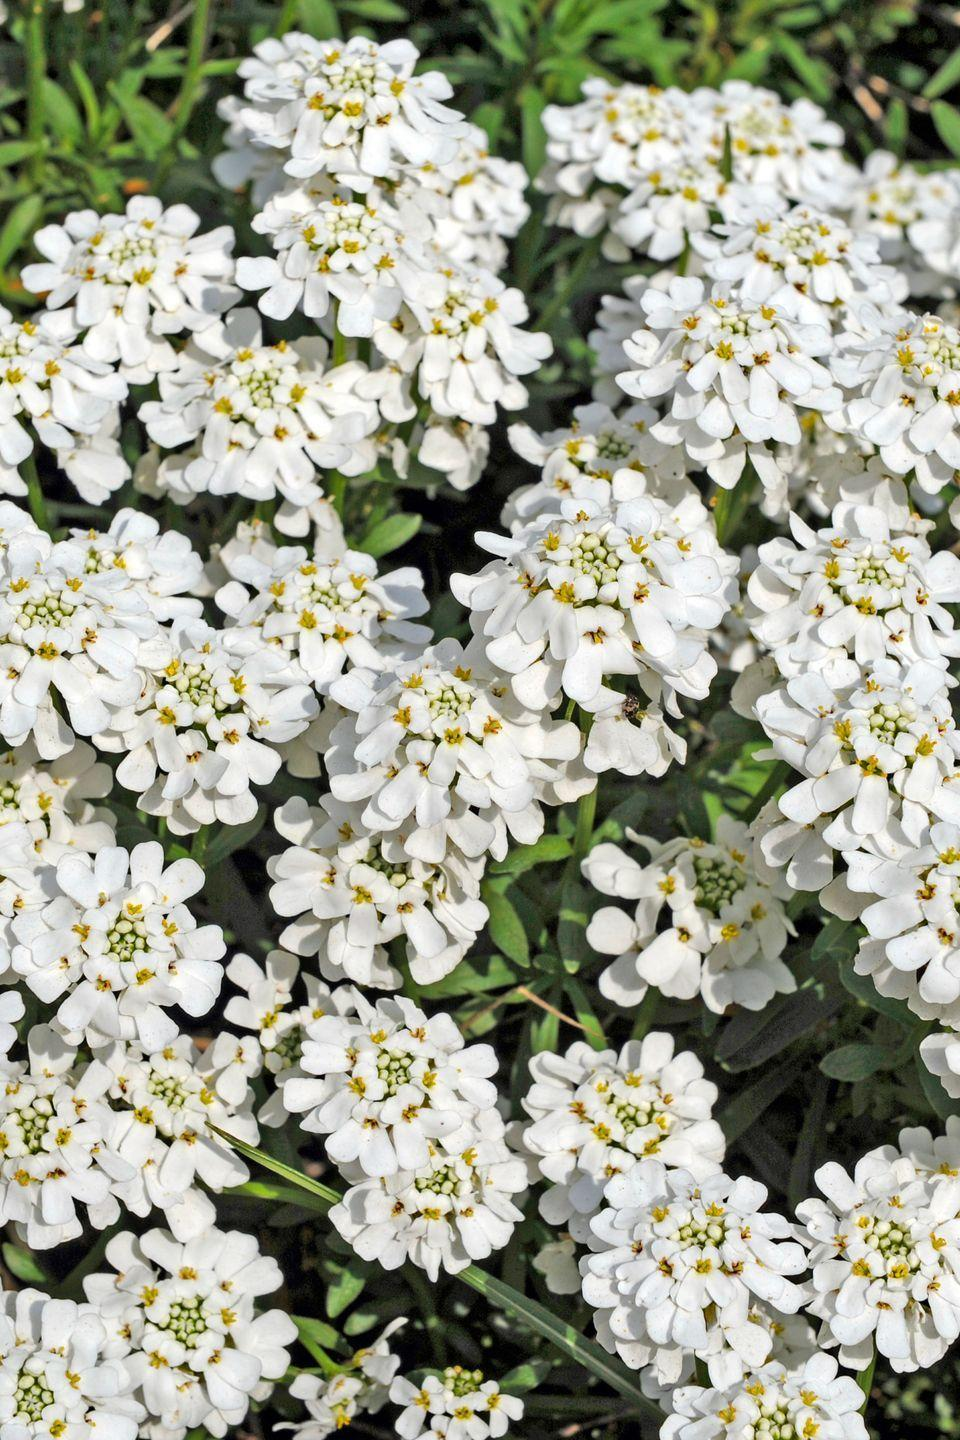 <p>This beautiful bloom is perfect for cascading over rocks or edges. </p><p><strong>Zones: 3-9</strong></p>